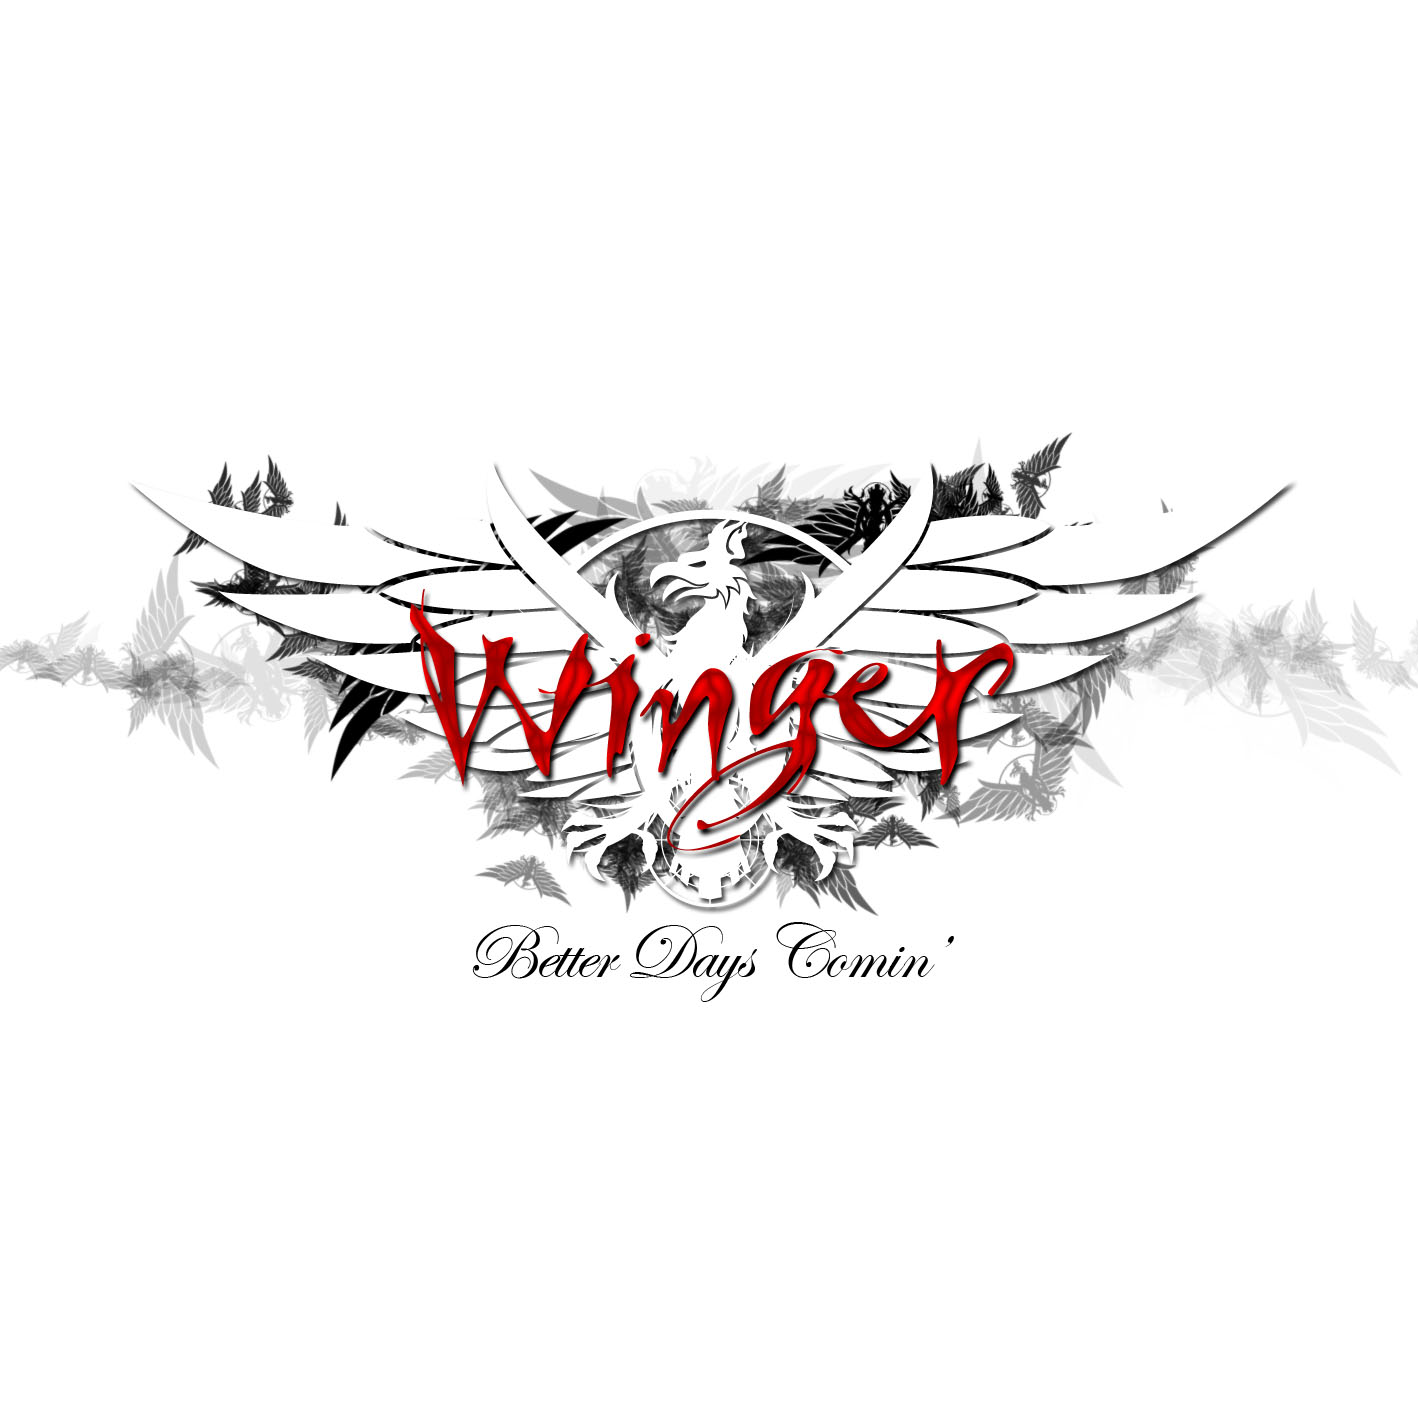 winger singles Winger's best 100% free online dating site meet loads of available single women in winger with mingle2's winger dating services find a girlfriend or lover in winger, or just have fun.